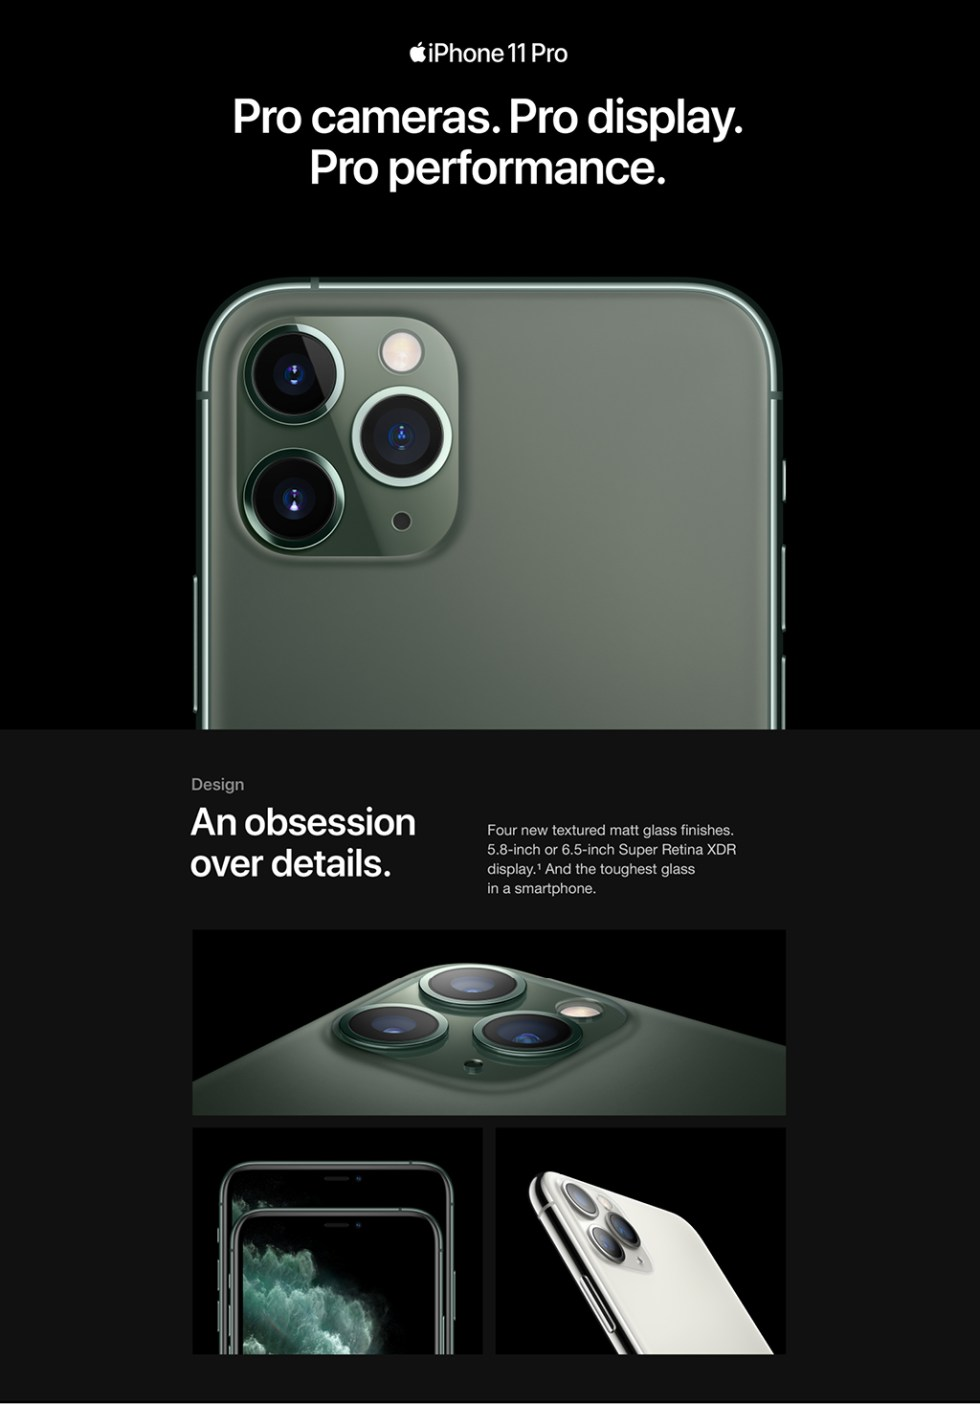 Apple iPhone-11 Pro Max Product Features